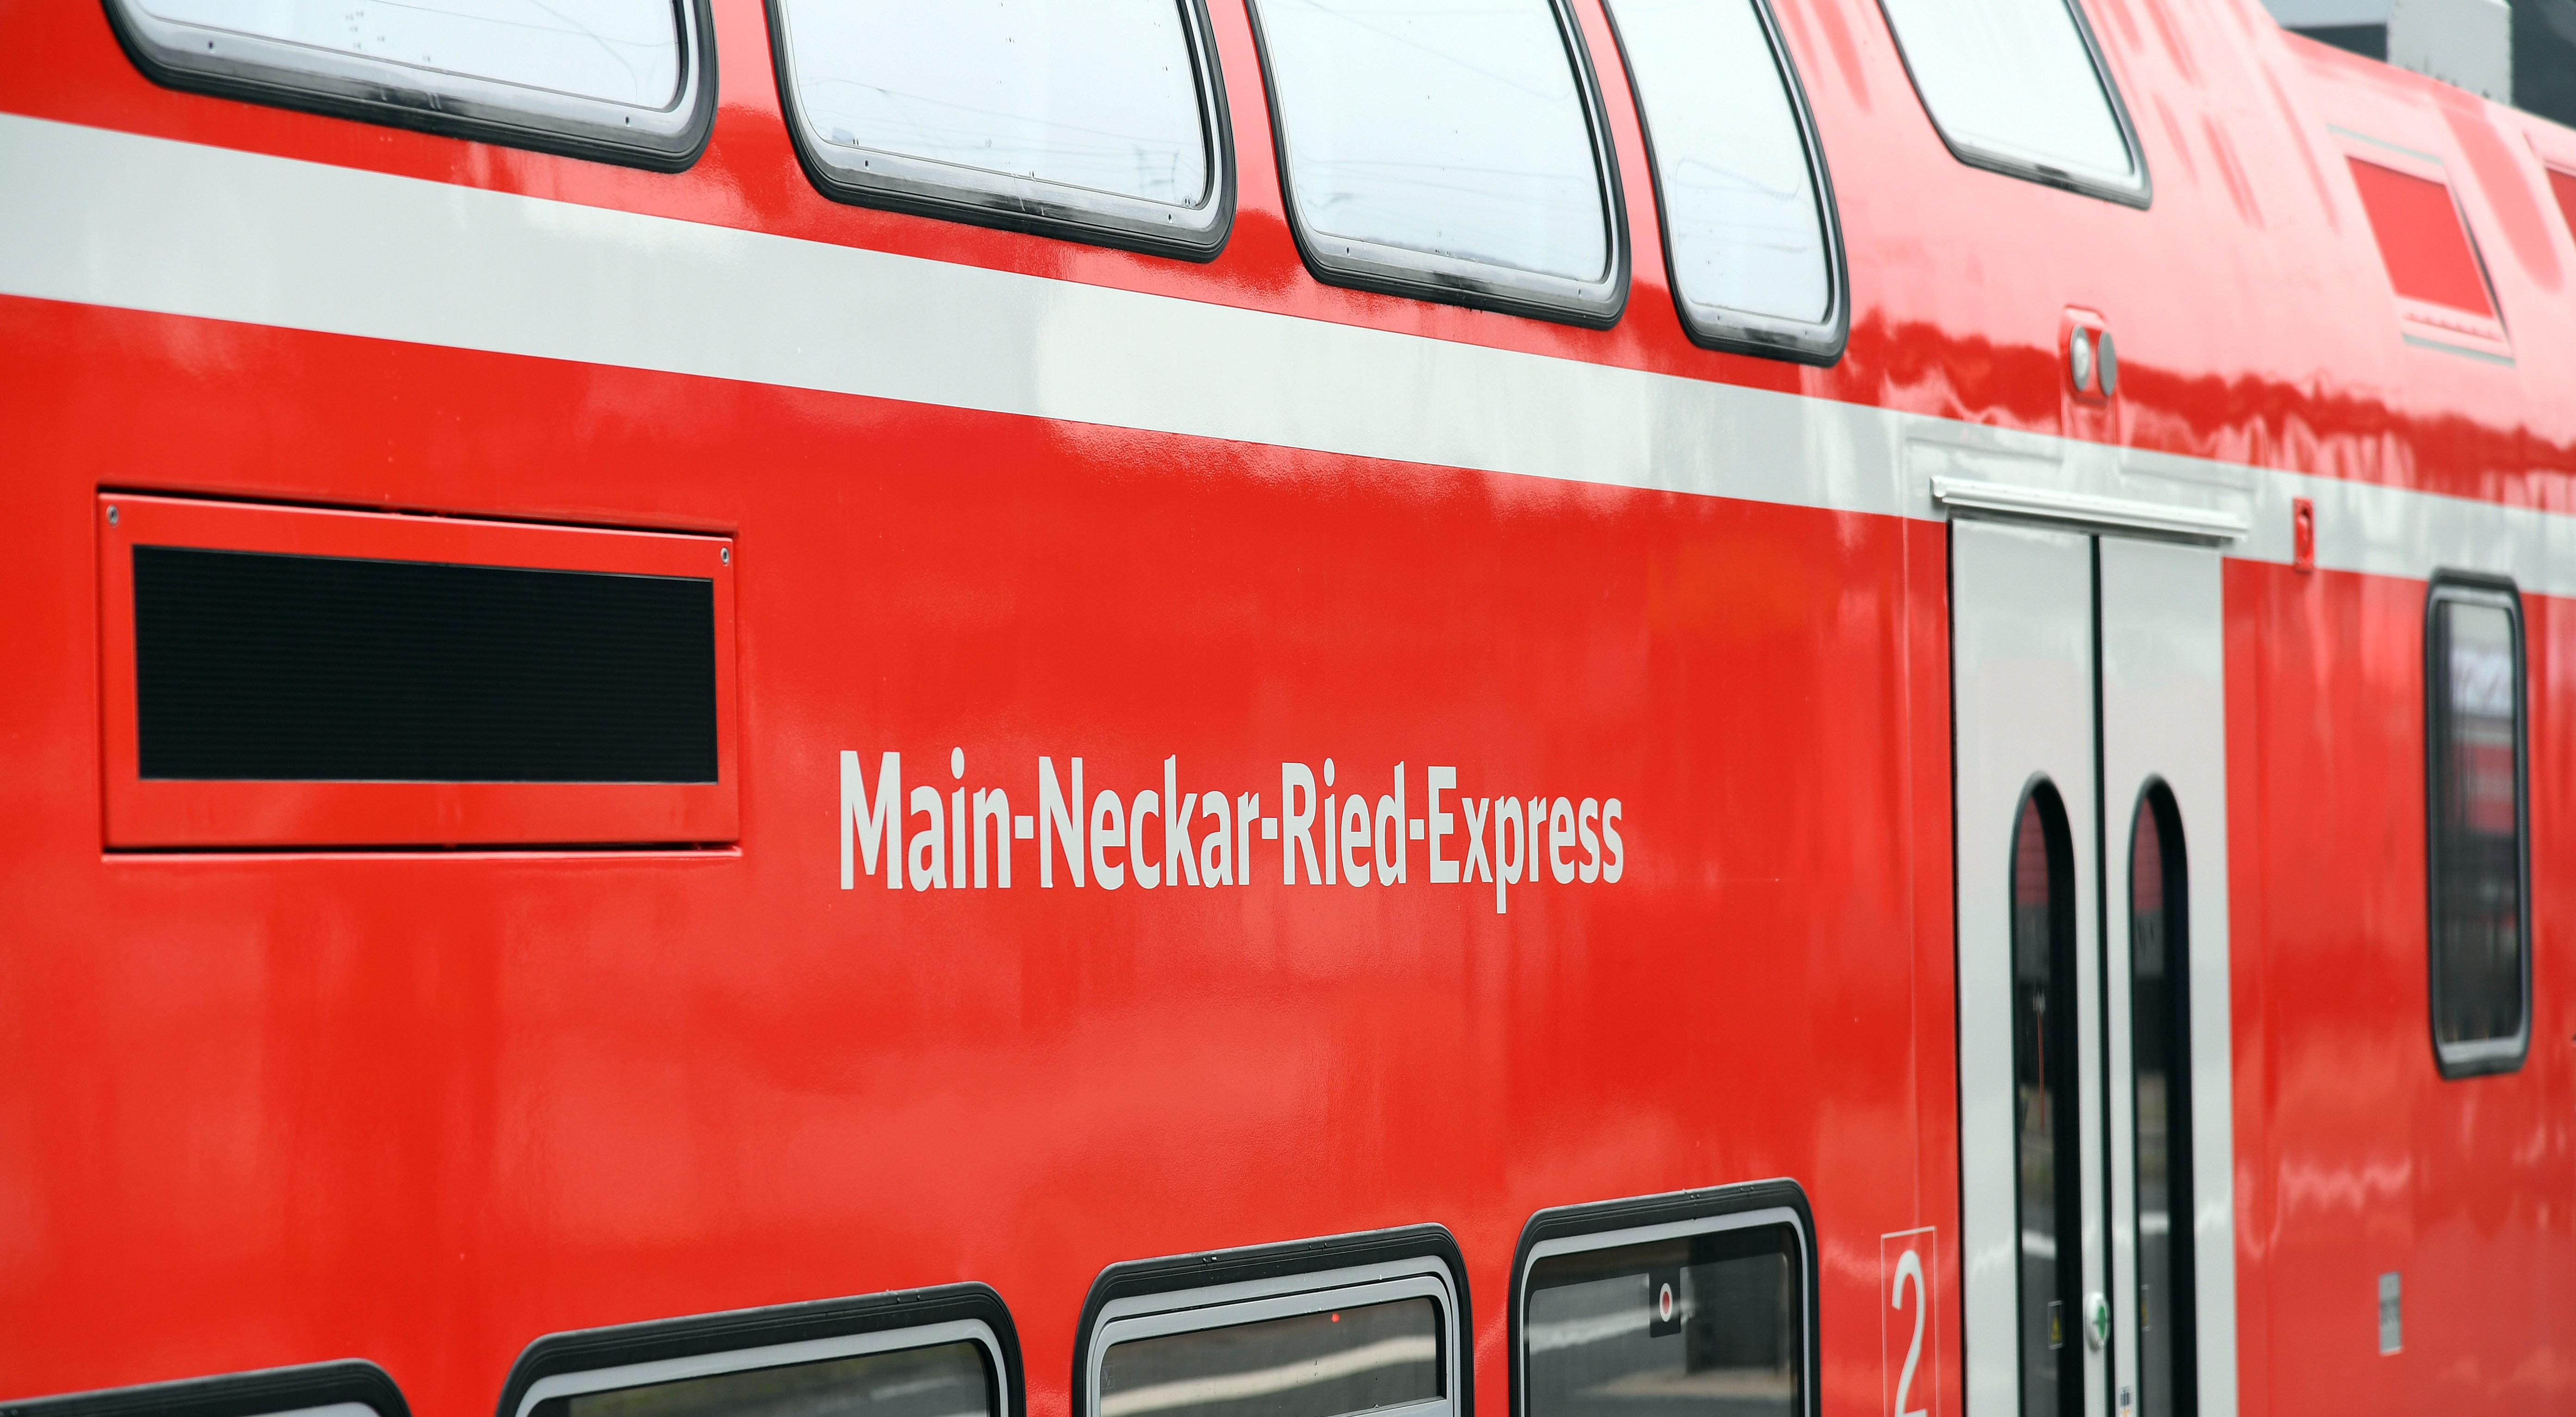 Deutsche Bahn continues deployment of Passenger Wi-Fi on its regional trains using Icomera Technology